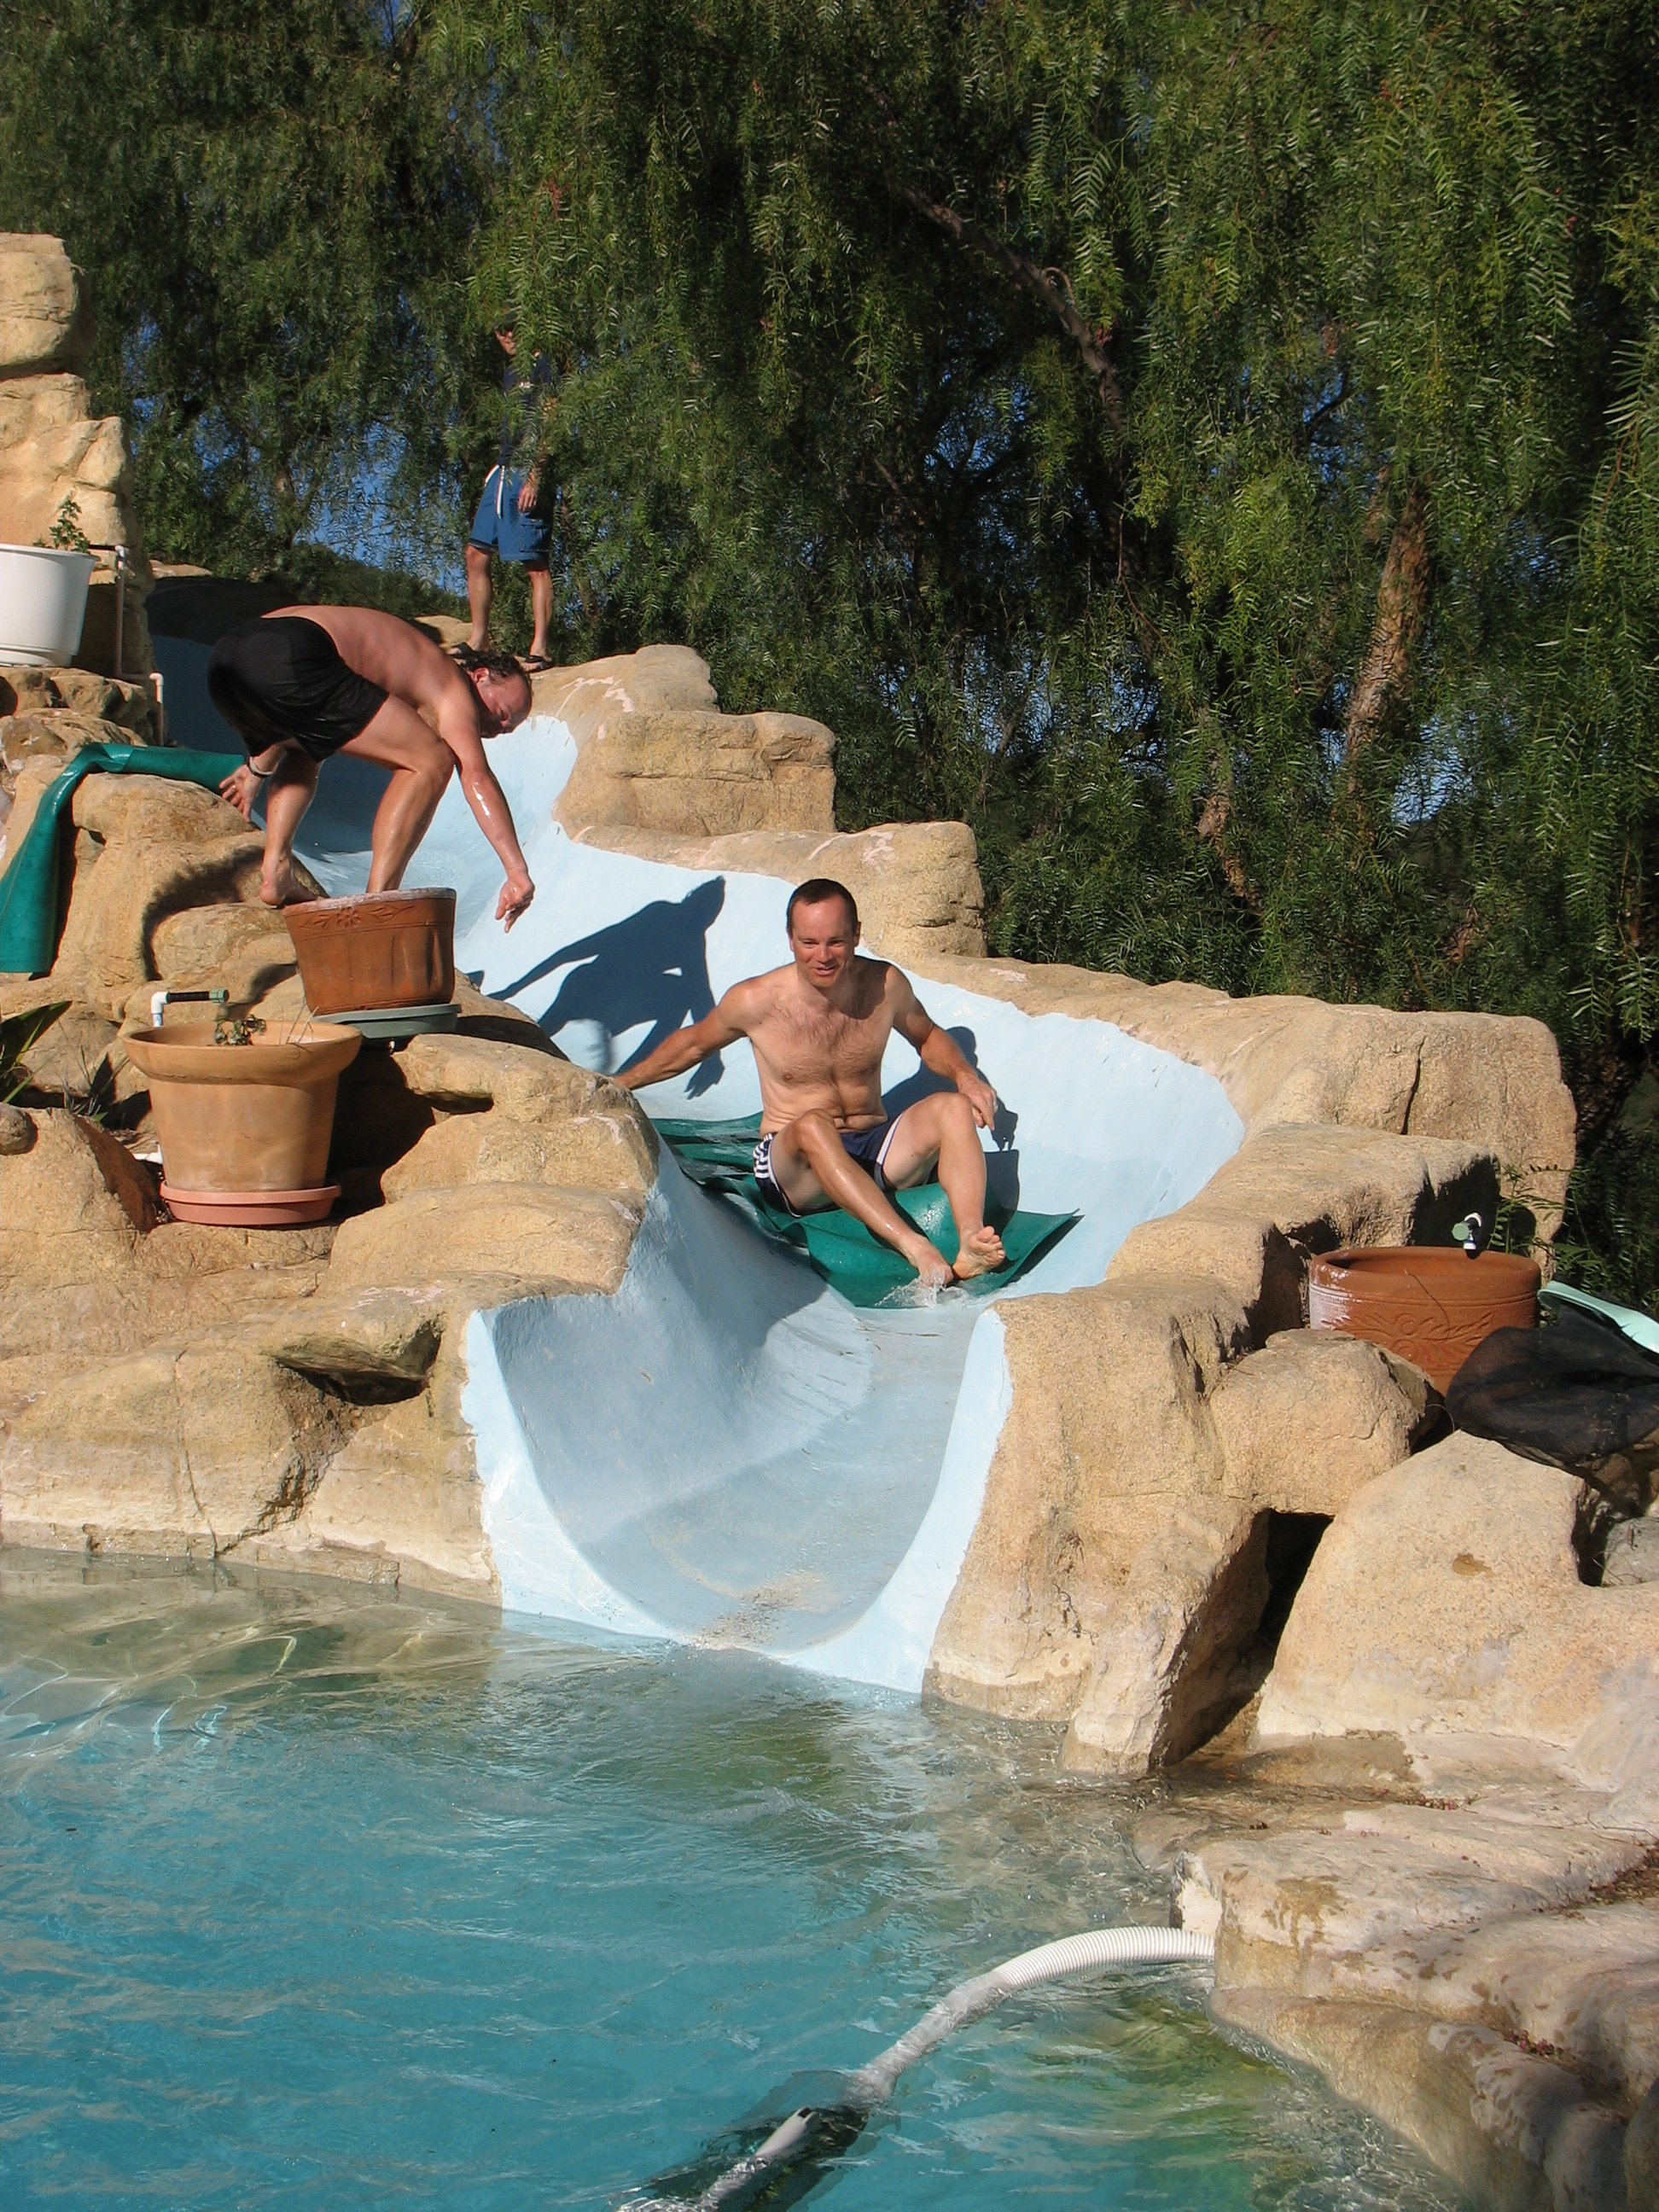 Cyclists sliding down a water slide after a day of riding at cycling camp